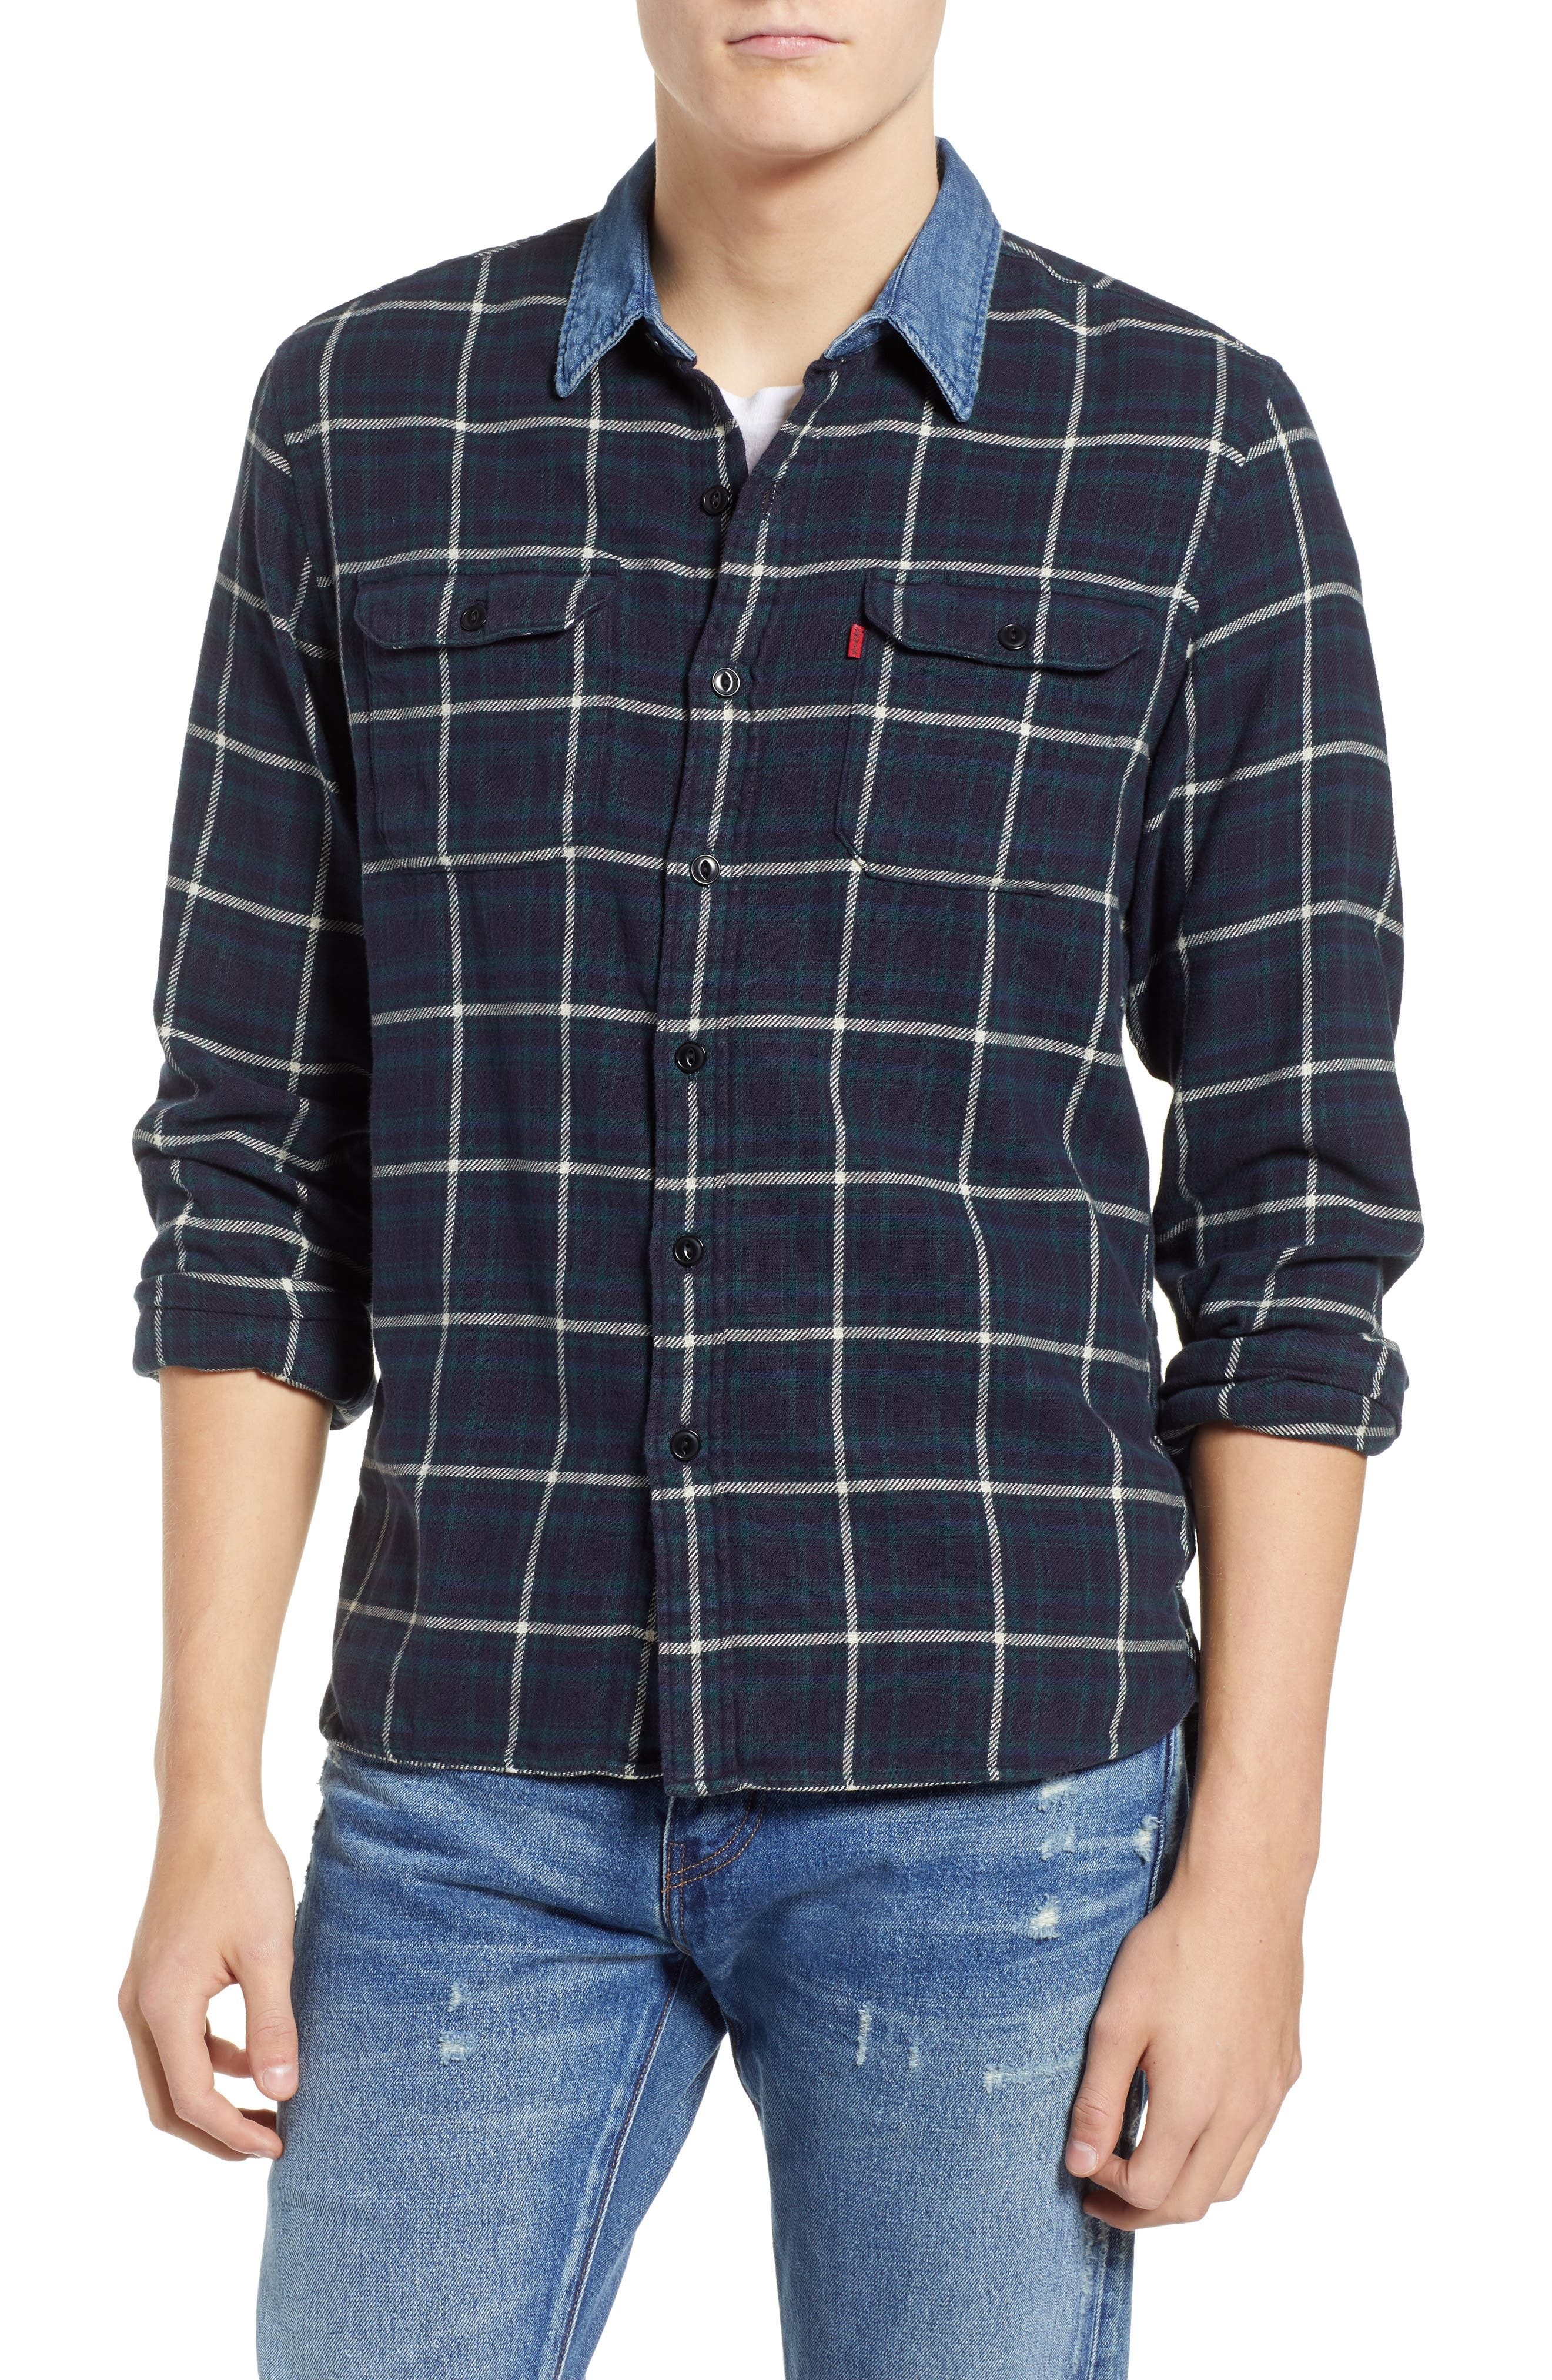 x Justin Timberlake Slim Fit Flannel Worker Shirt,                         Main,                         color, HALLET NIGHT SKY